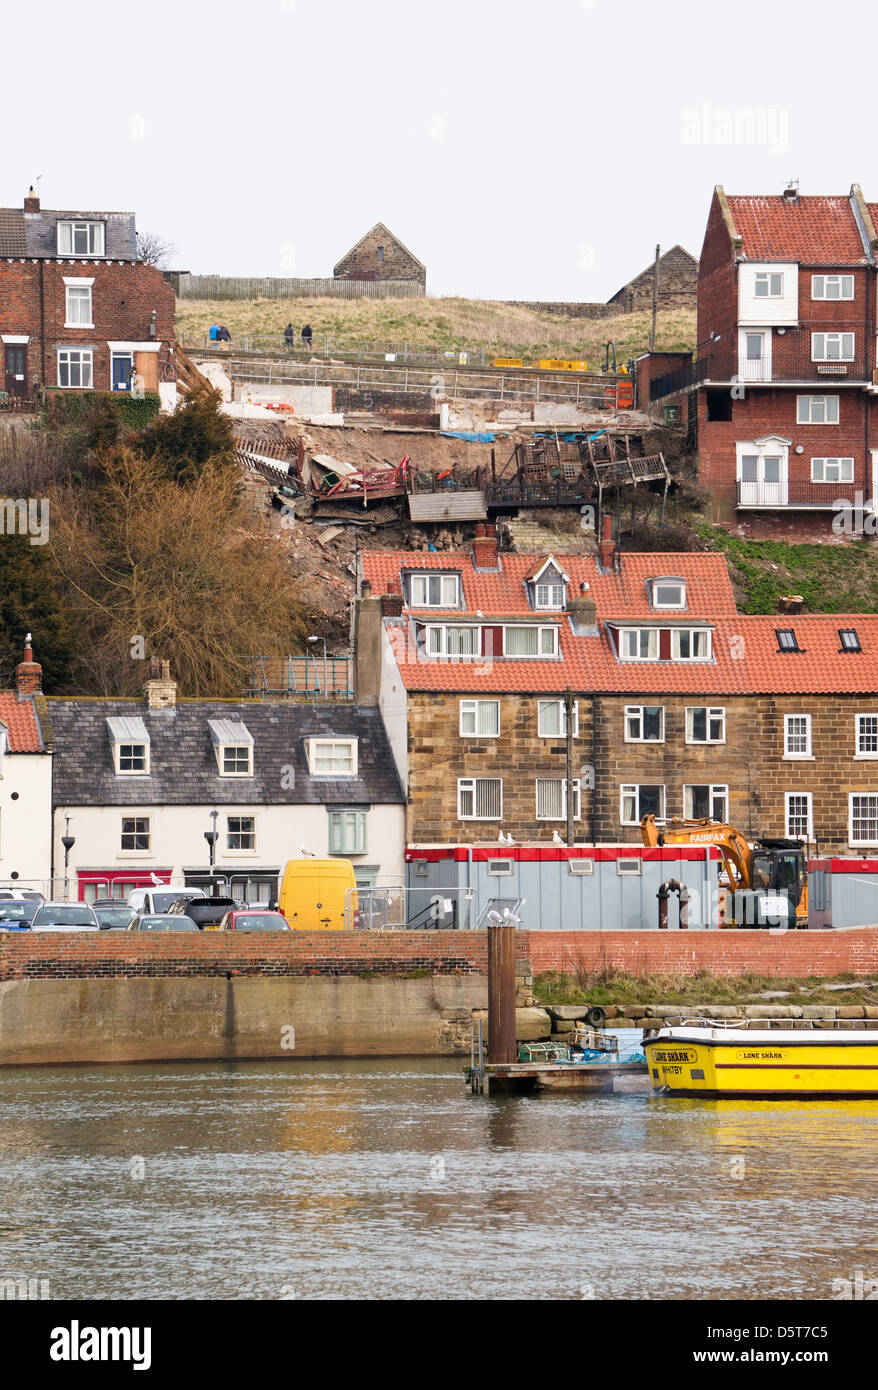 Site of landslide and demolished houses following torrential rain Whitby, north Yorkshire, England UK - Stock Image